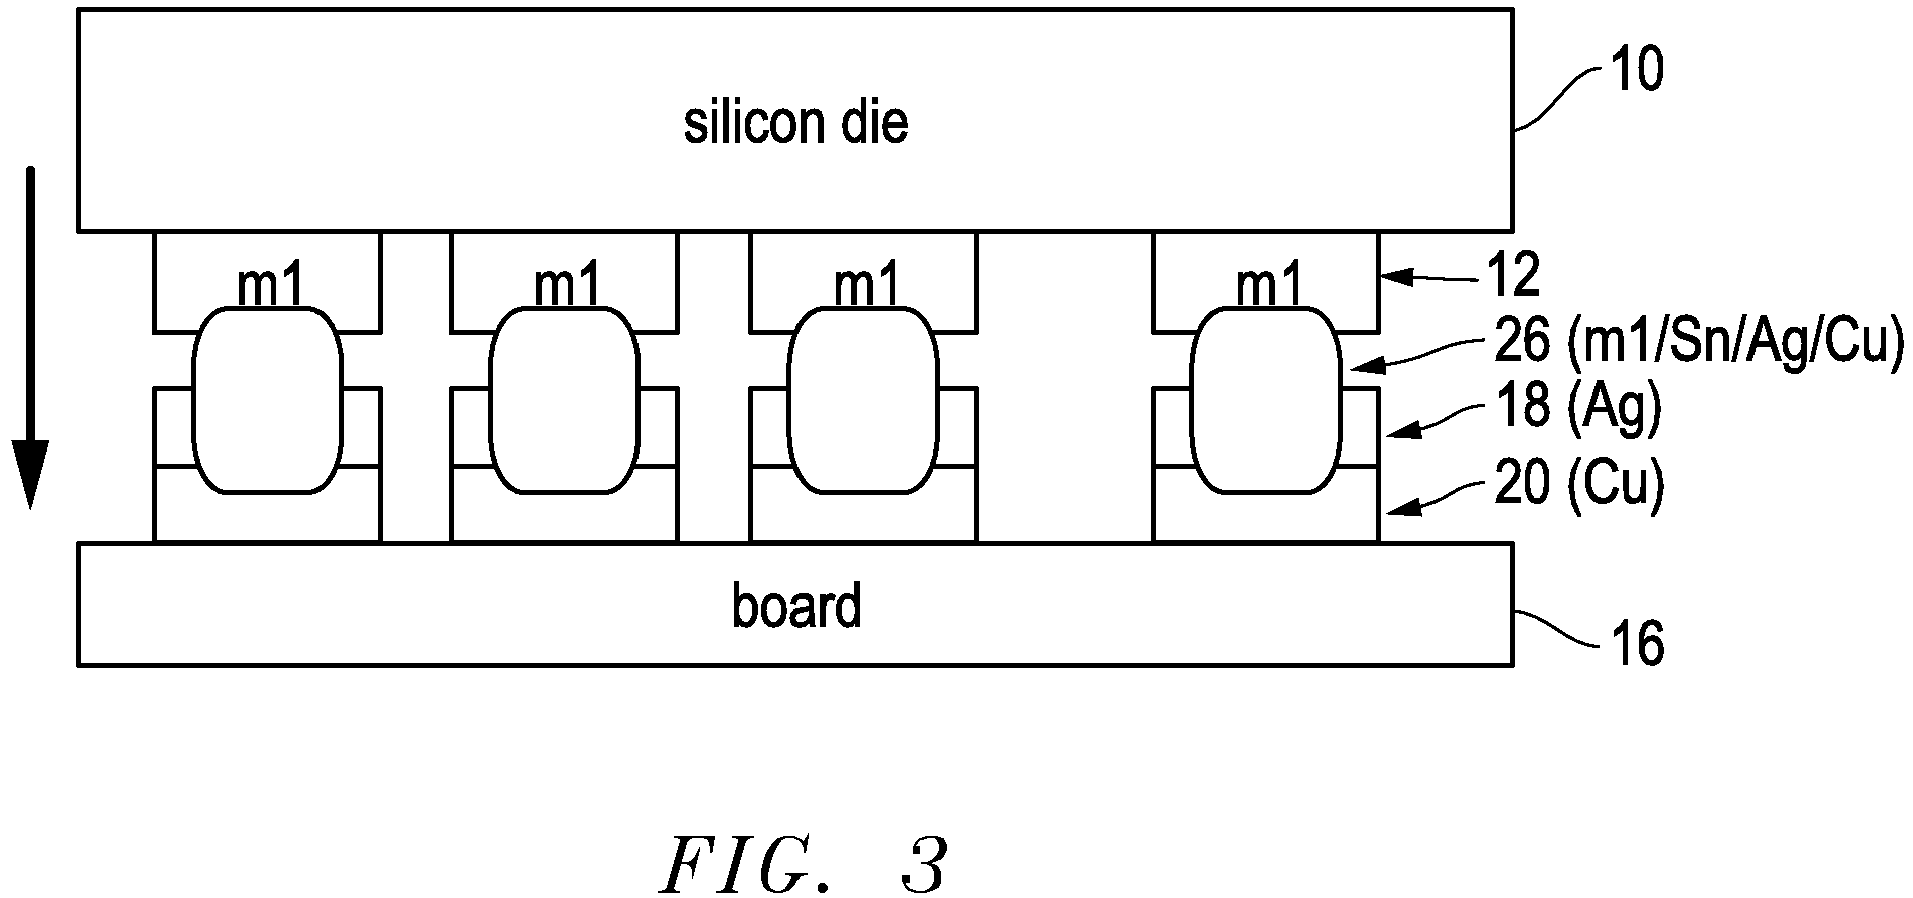 Ep3121843a3 Flip Chip Bonding A Die In Particular Sequential Silicon Circuit Board Figure Imgaf002